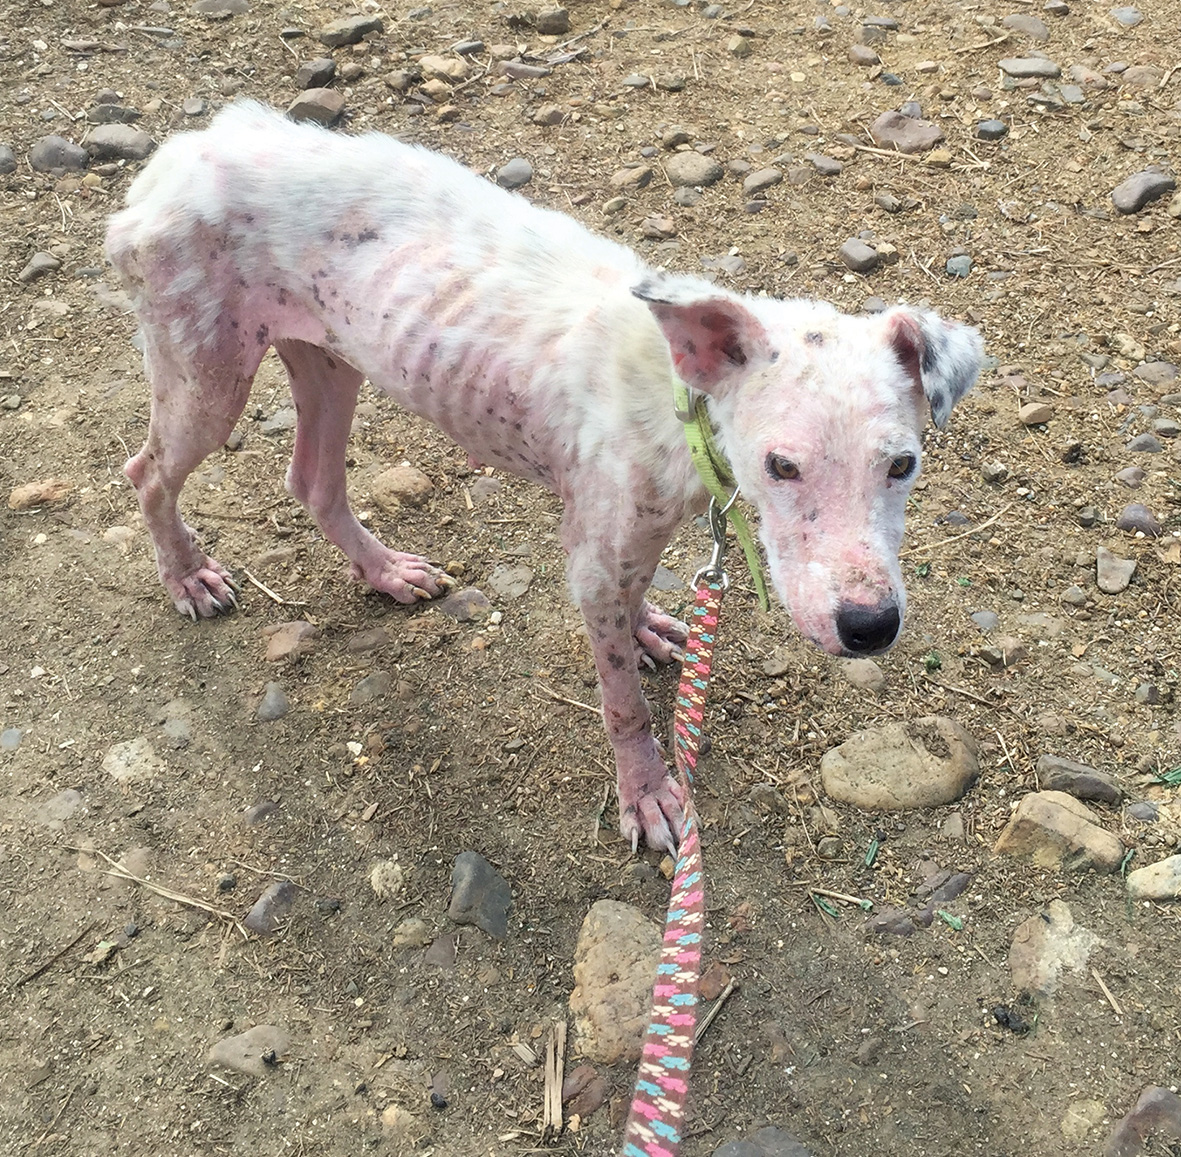 Rescue me : The pink dog